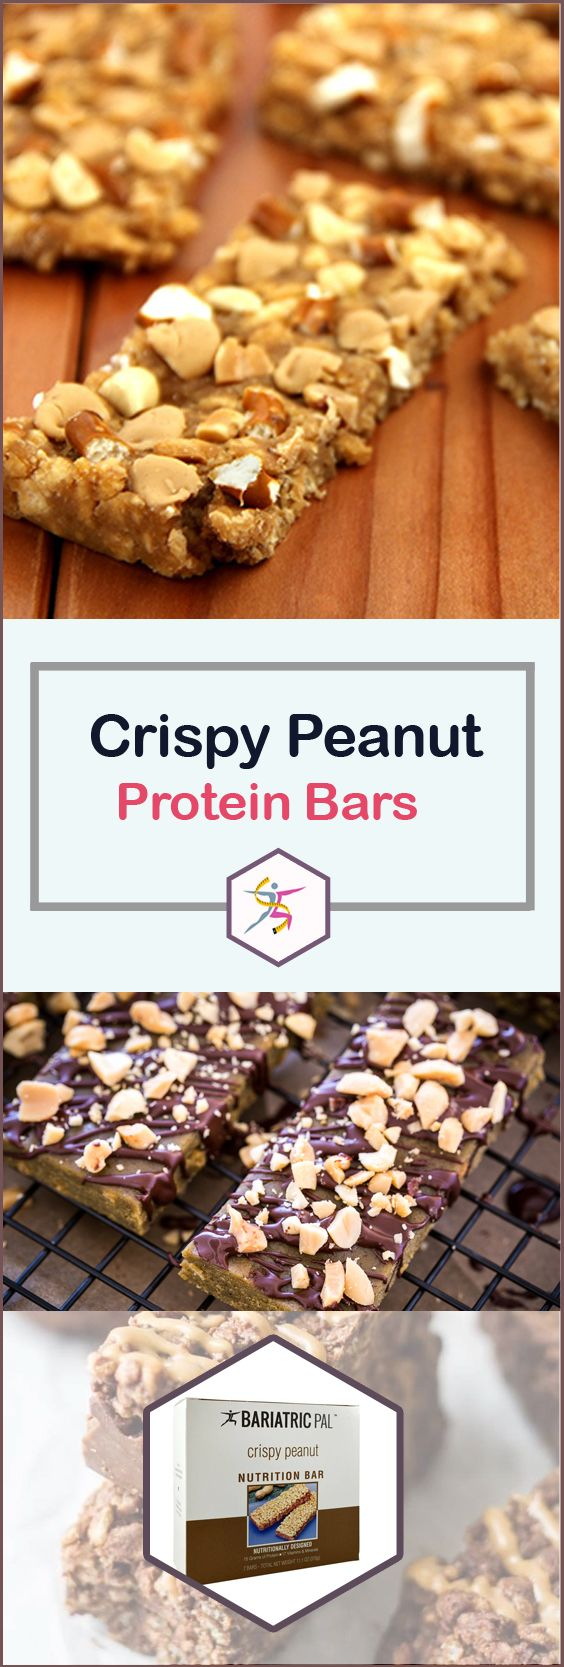 BariatricPal 15 Gram Protein Bars Crispy Peanut give you the irresistible taste of peanuts and the crunch you crave, while keeping you within your calorie and fat budget. Think of it as a chocolate peanut butter granola bar that slims you down.